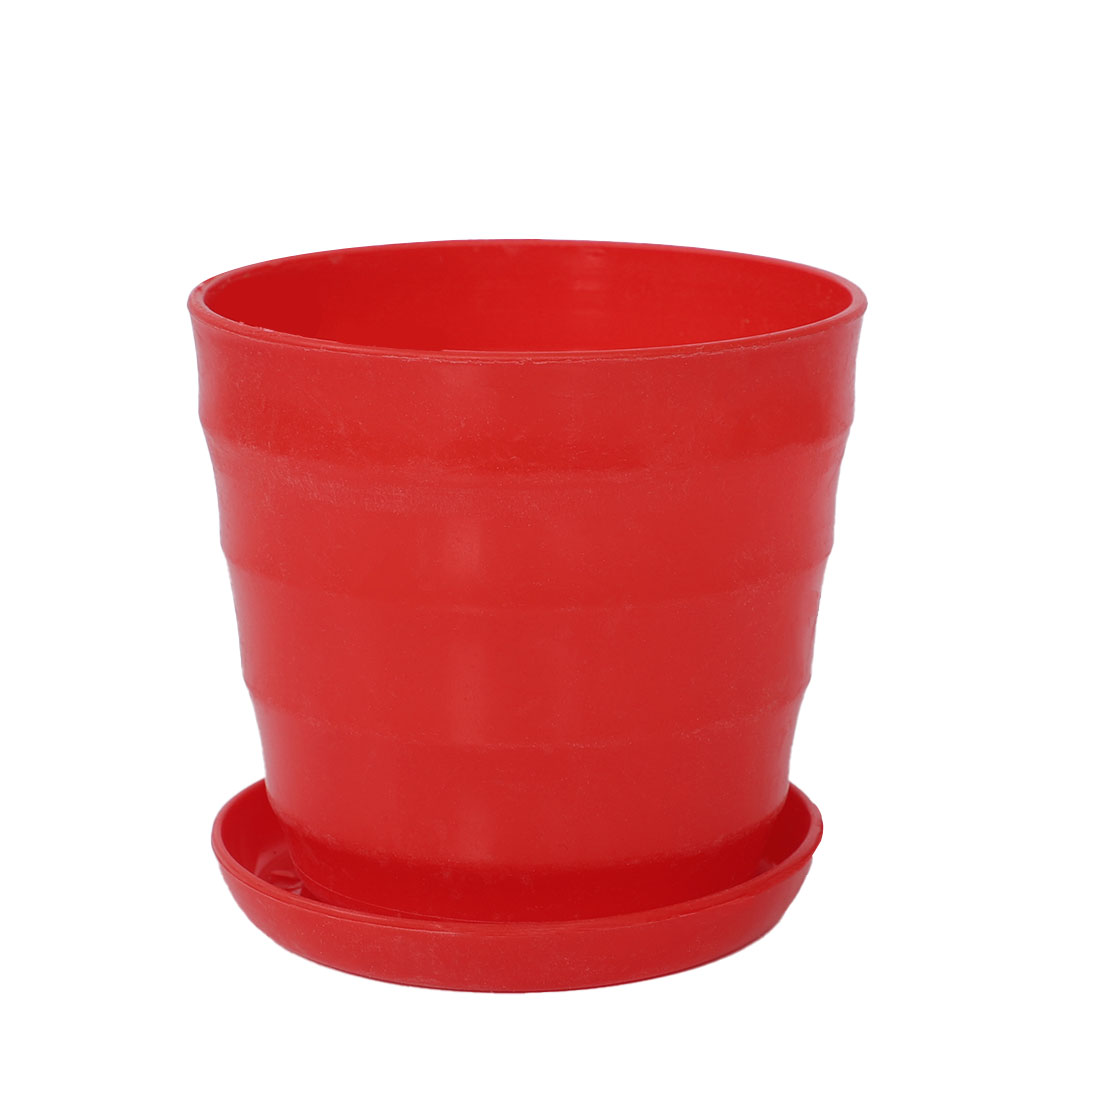 9cm Dia Red Plastic Stripe Pattern Home Garden Office Plant Planter Flower Pot